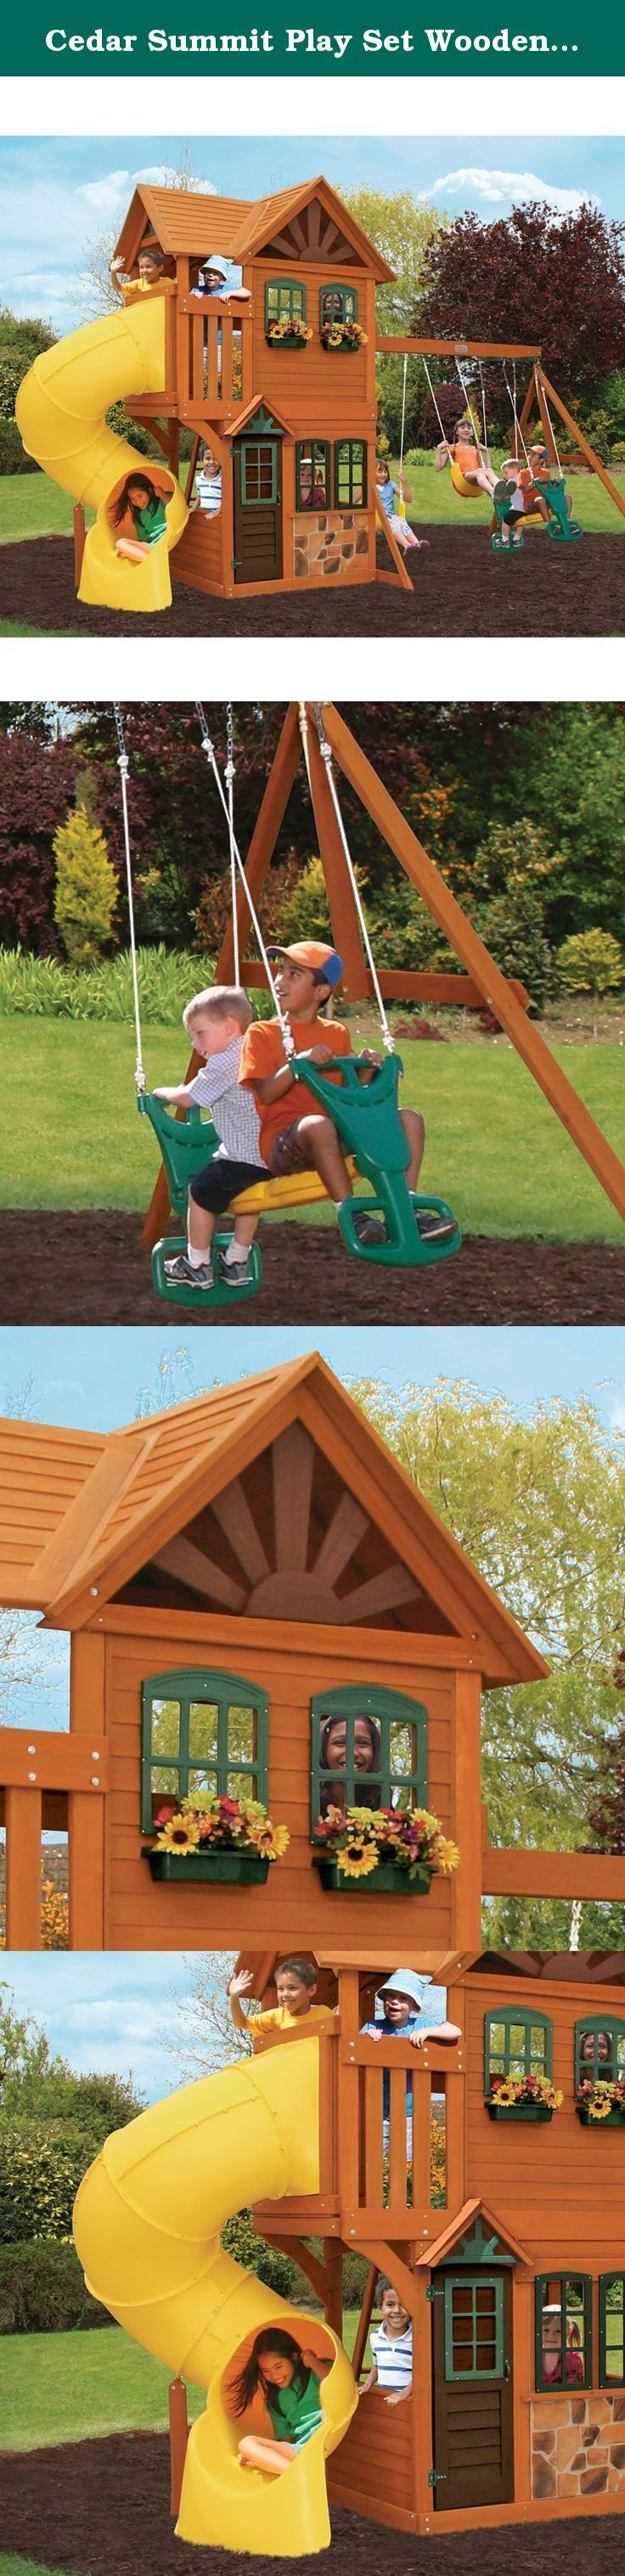 86 best Play & Swing Sets Play Sets & Playground Equipment